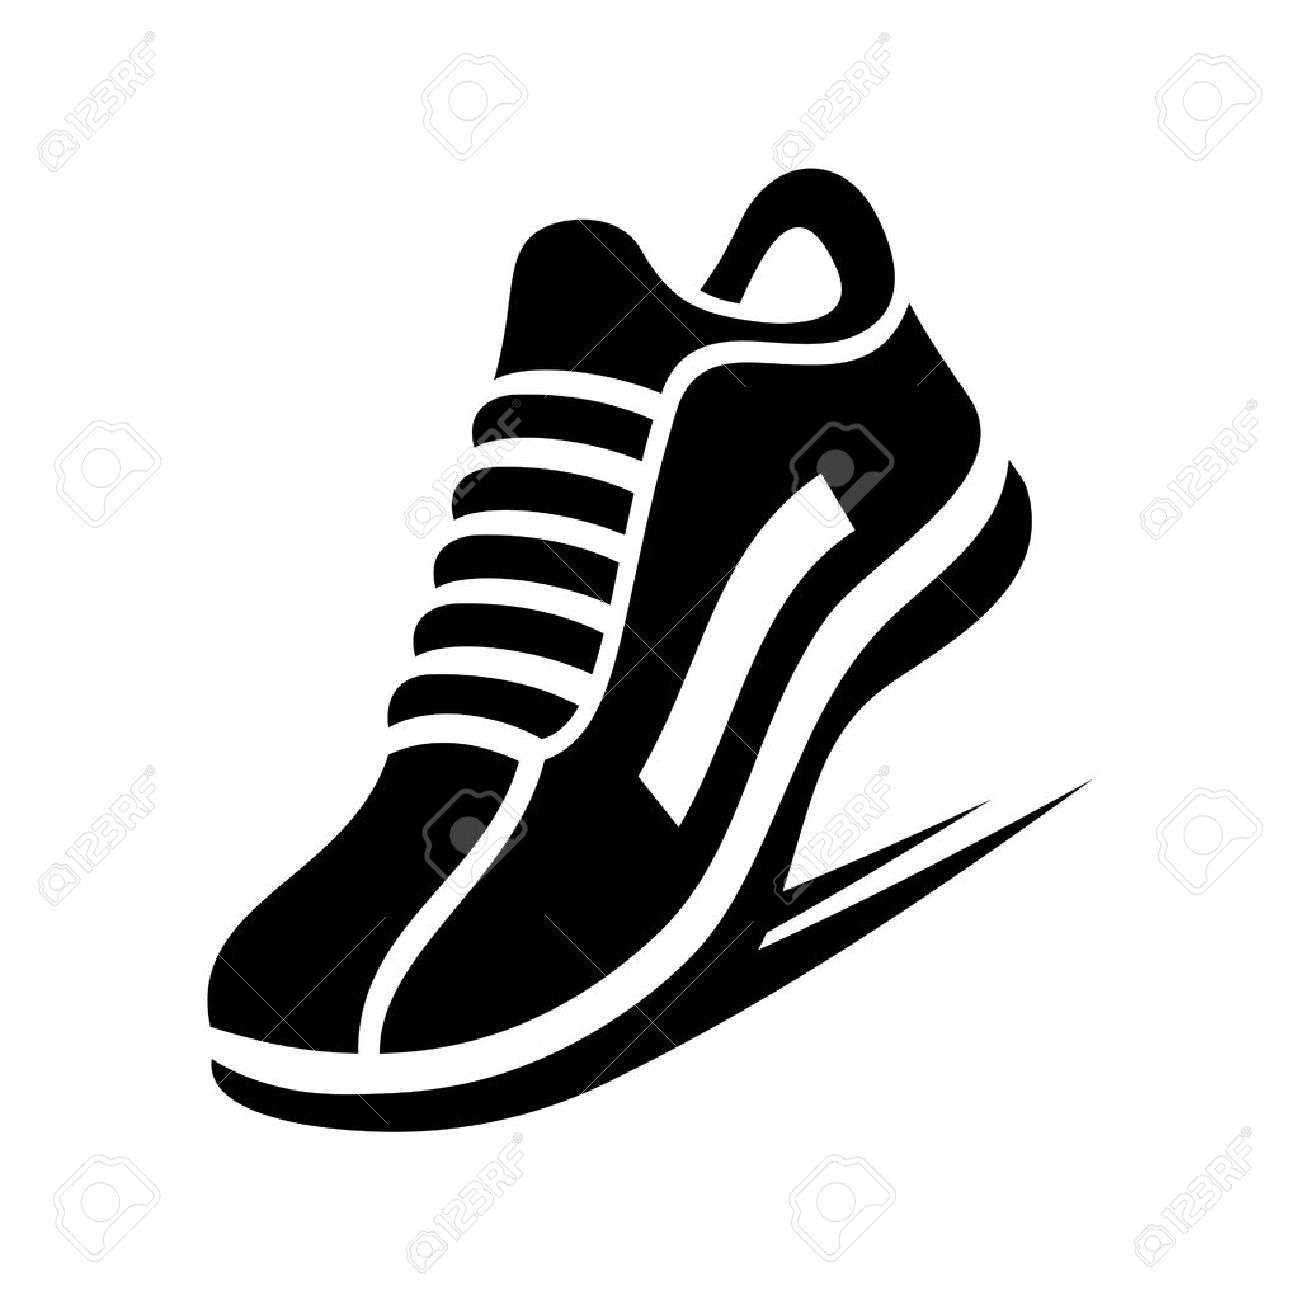 running shoe icon on white background royalty free cliparts vectors rh 123rf com clip art pictures of running shoes clipart running shoes free